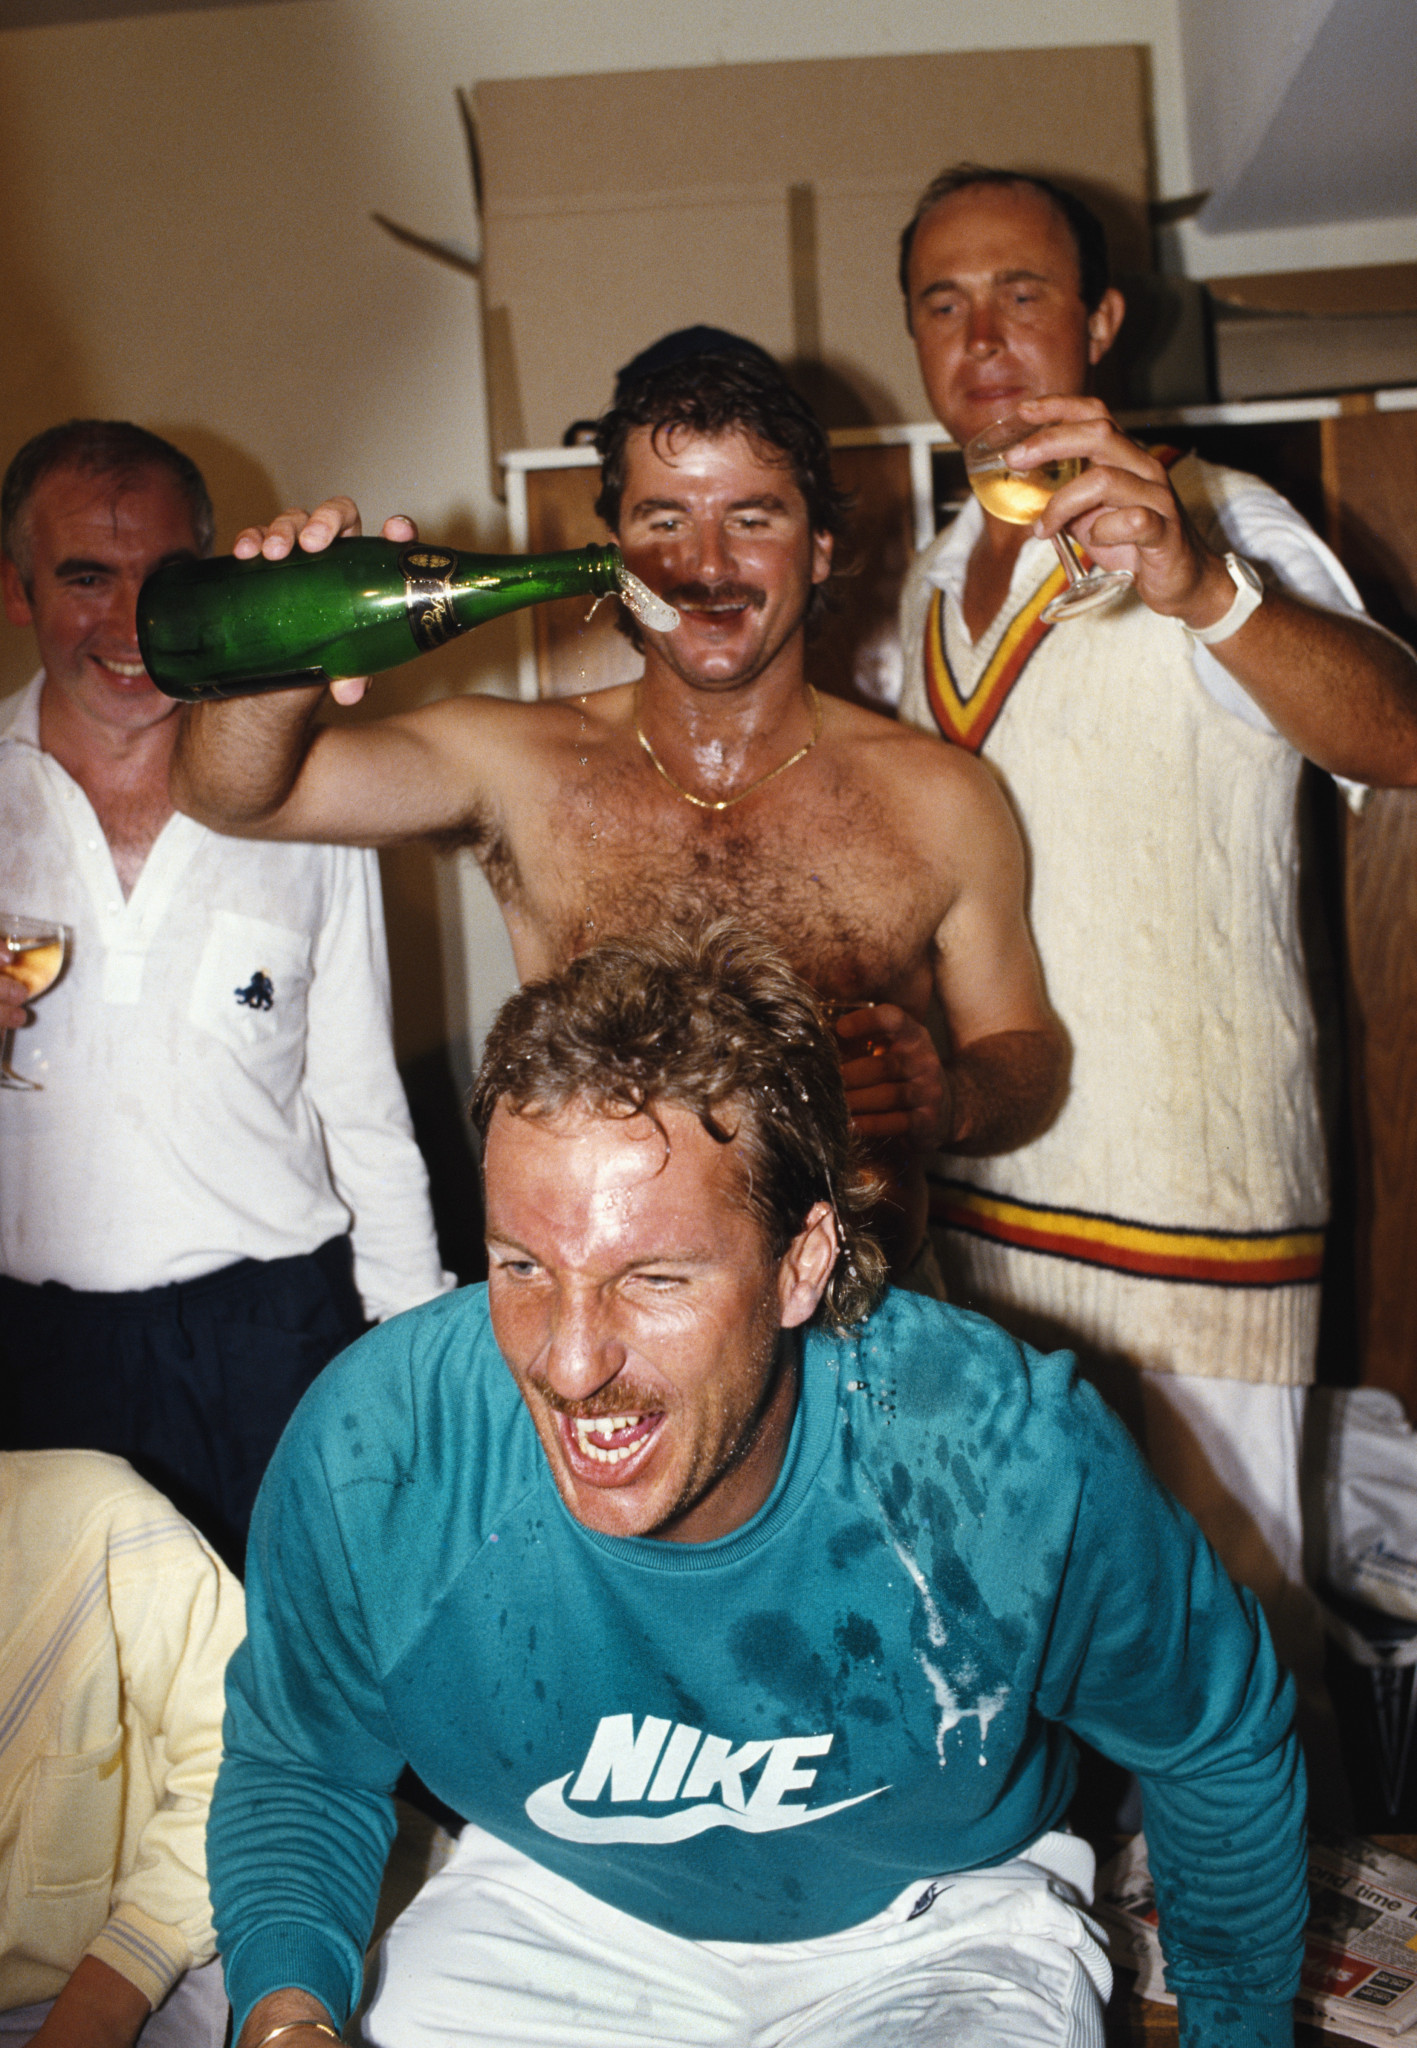 Ian Botham, front centre, and Allan Lamb, top centre, were partners in crime in terms of practical jokes as well as cricketers for England ©Getty Images